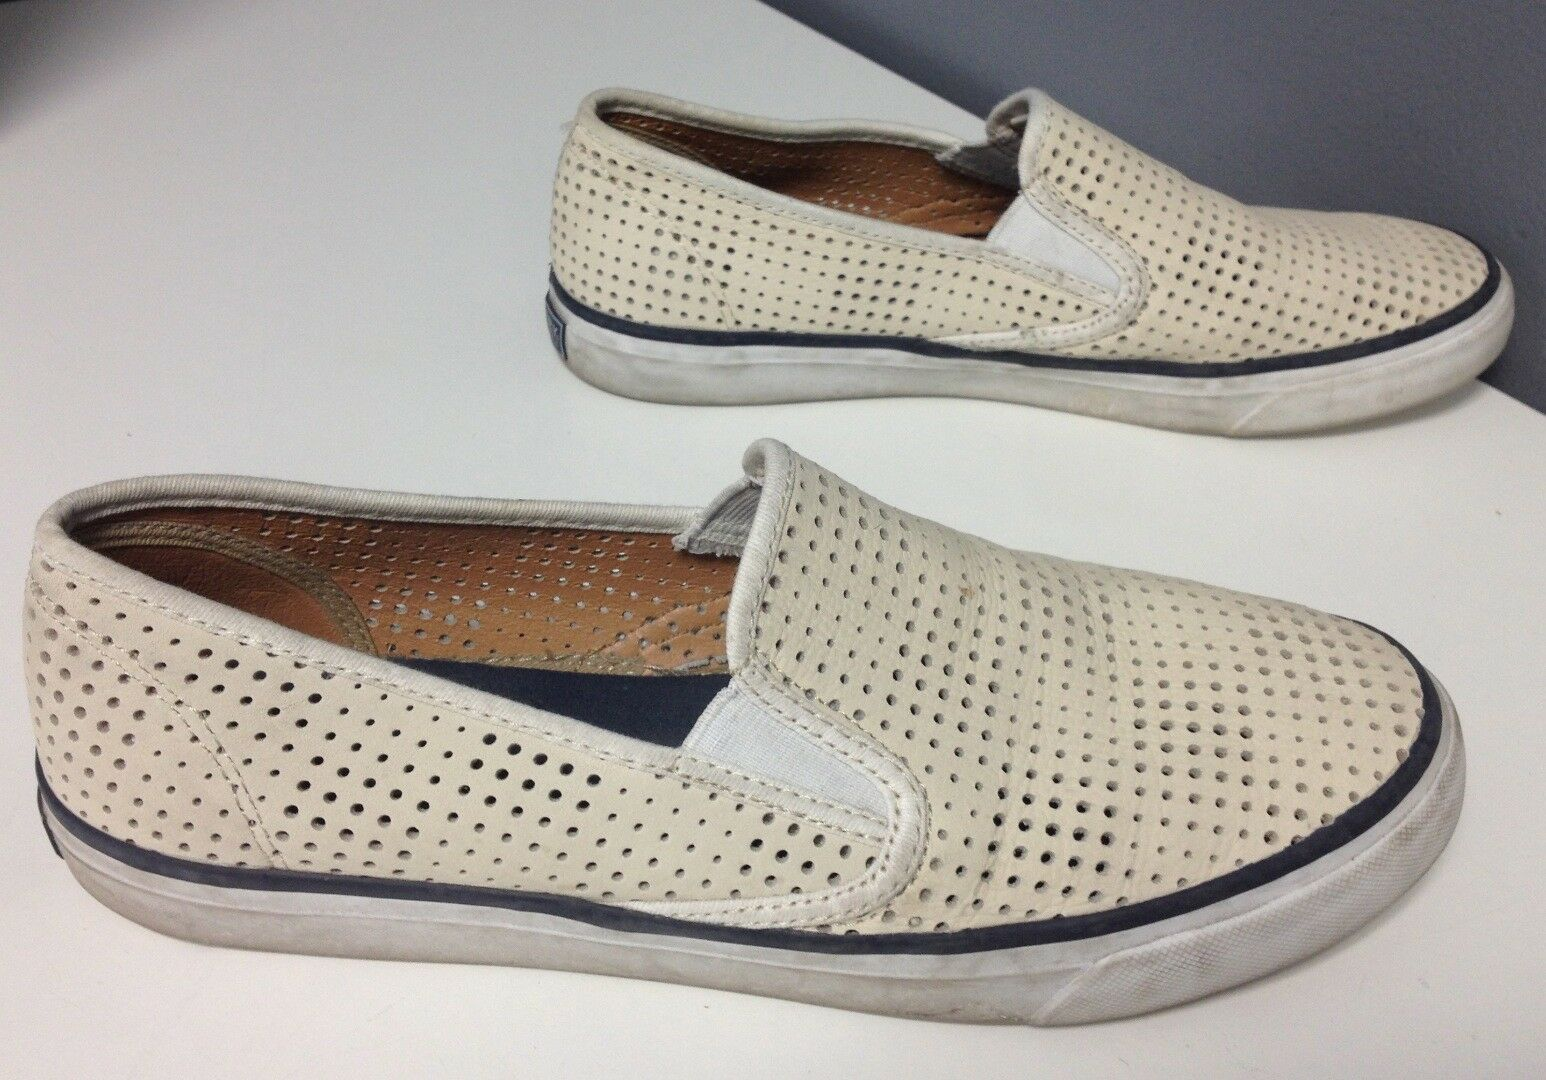 SPERRY TOP SIDER WEISS Perforated Leder Slip On Casual Loafers Sz 9.5 B4144